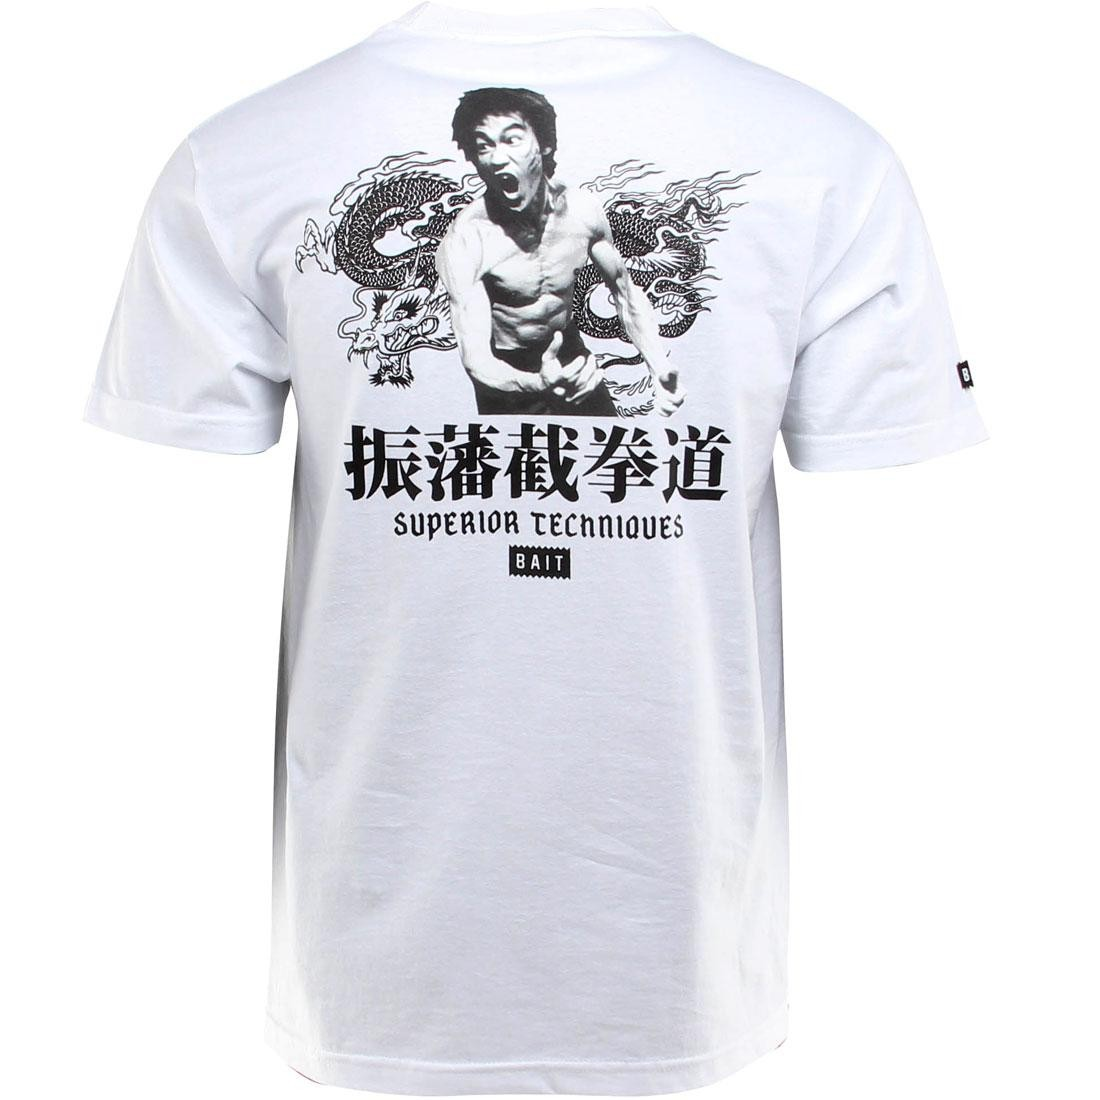 BAIT x Bruce Lee Superior Techniques Tee (white / black) - BAIT SDCC Exclusive